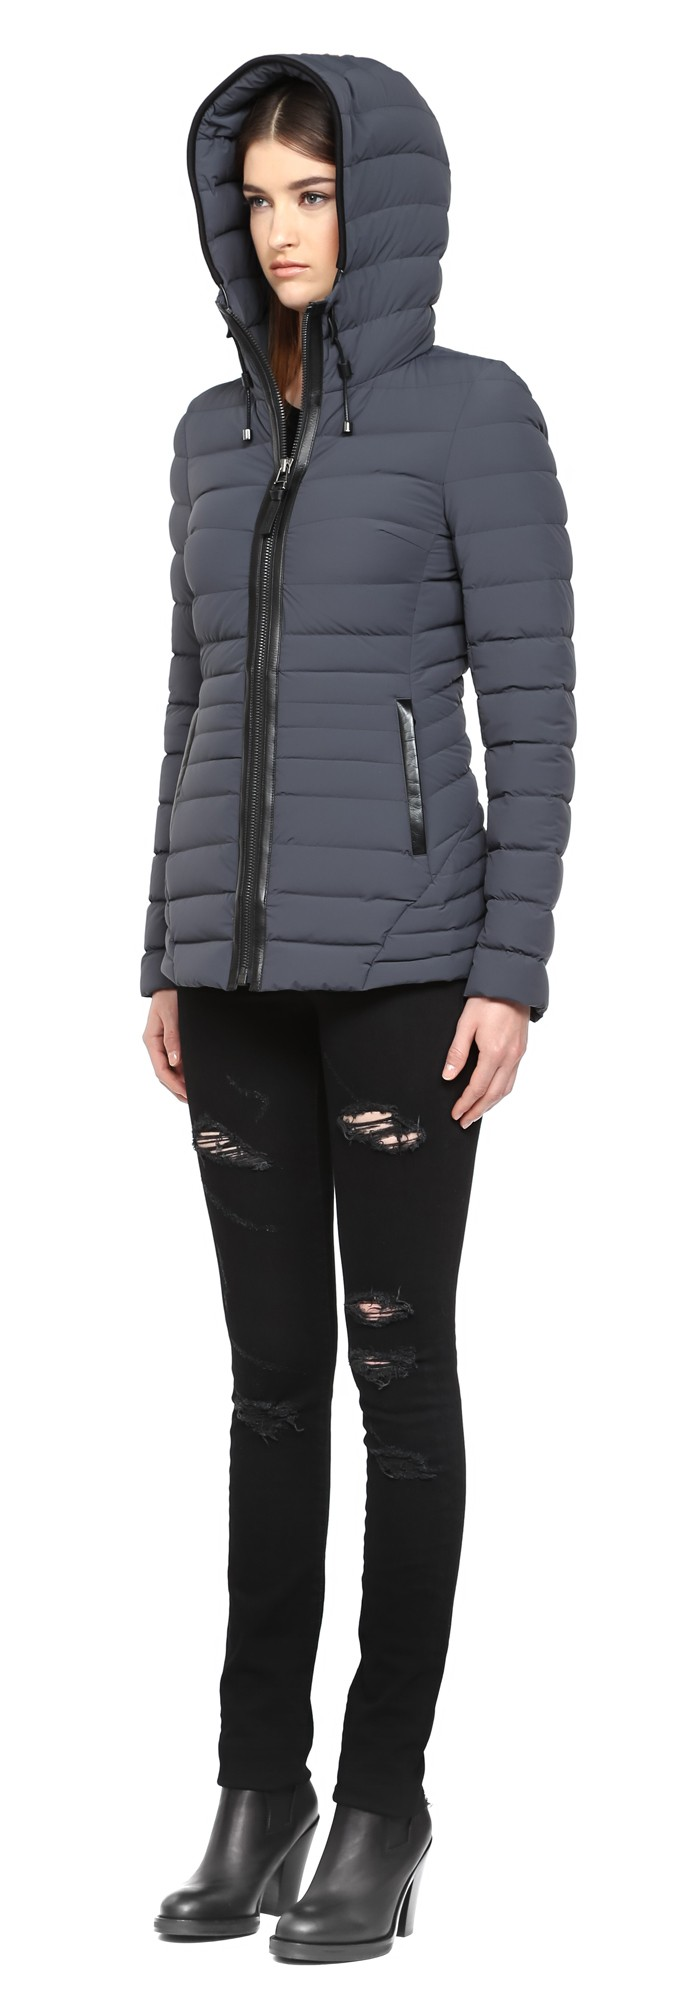 Charcoal Lux Light Weight Down Coat With Hood Mackage Women